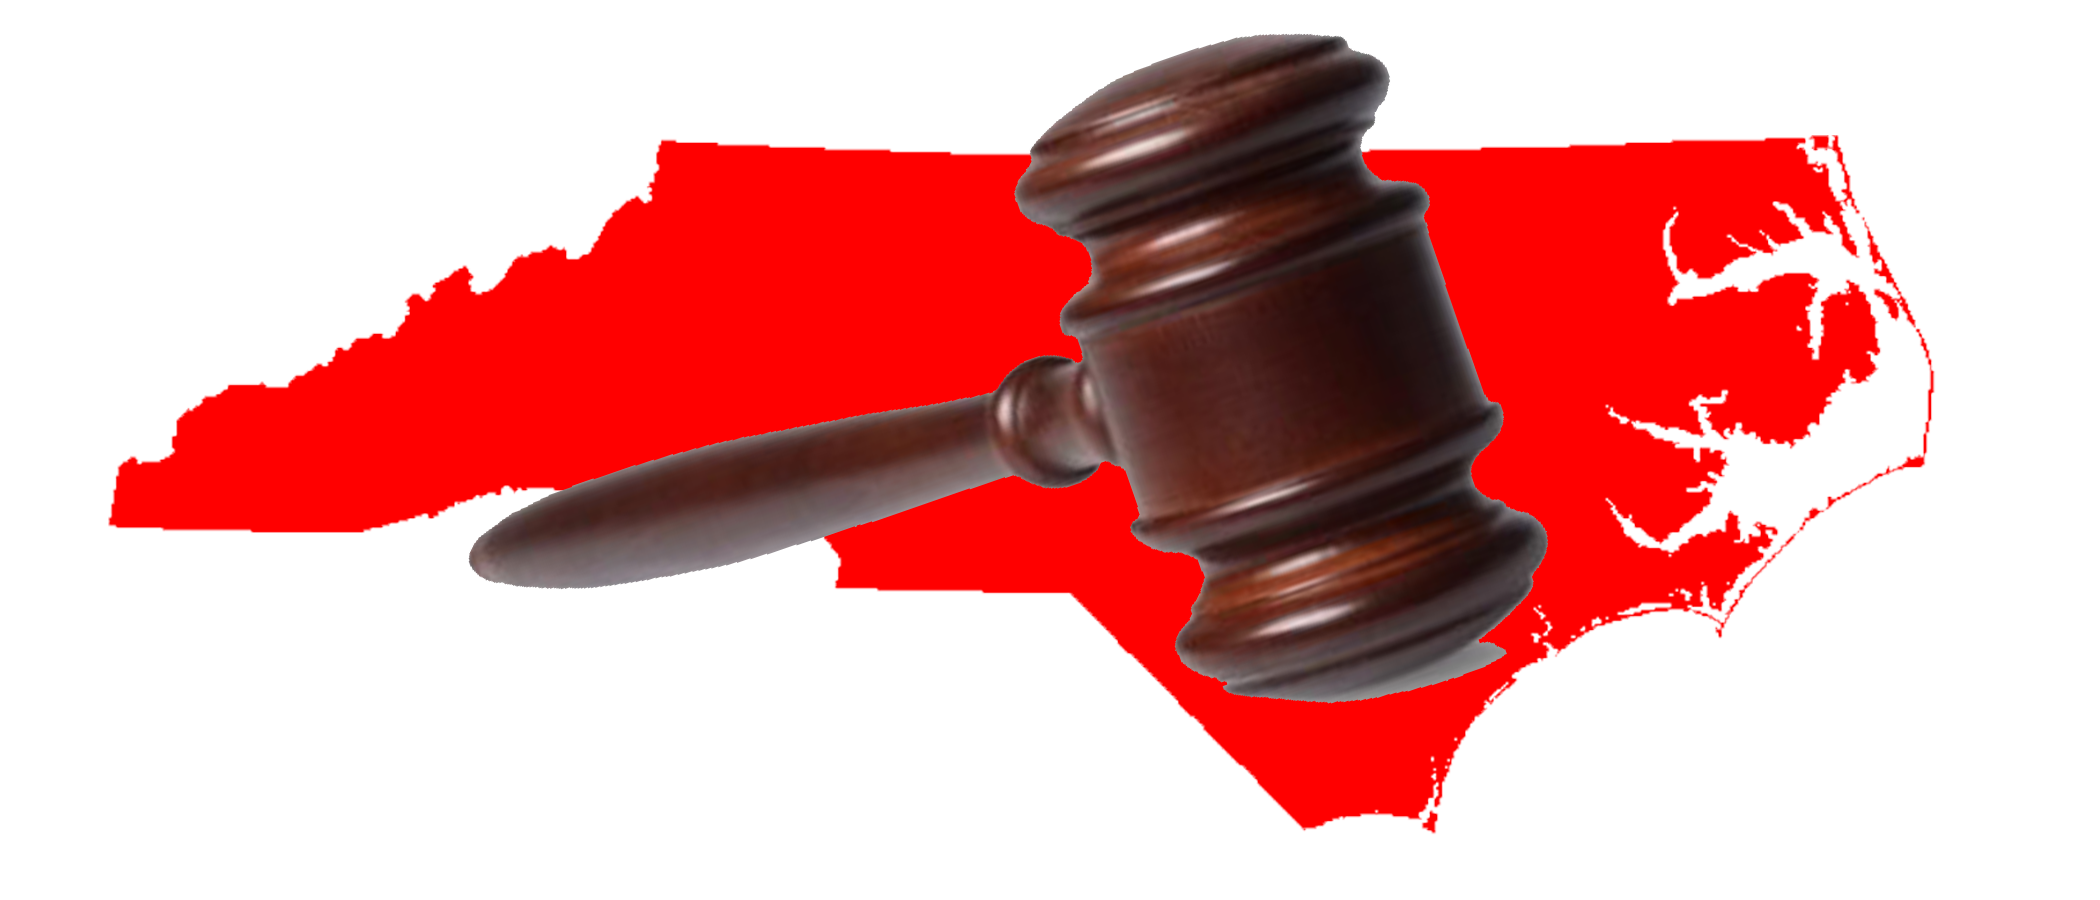 Gavel clipart red, Gavel red Transparent FREE for download ...